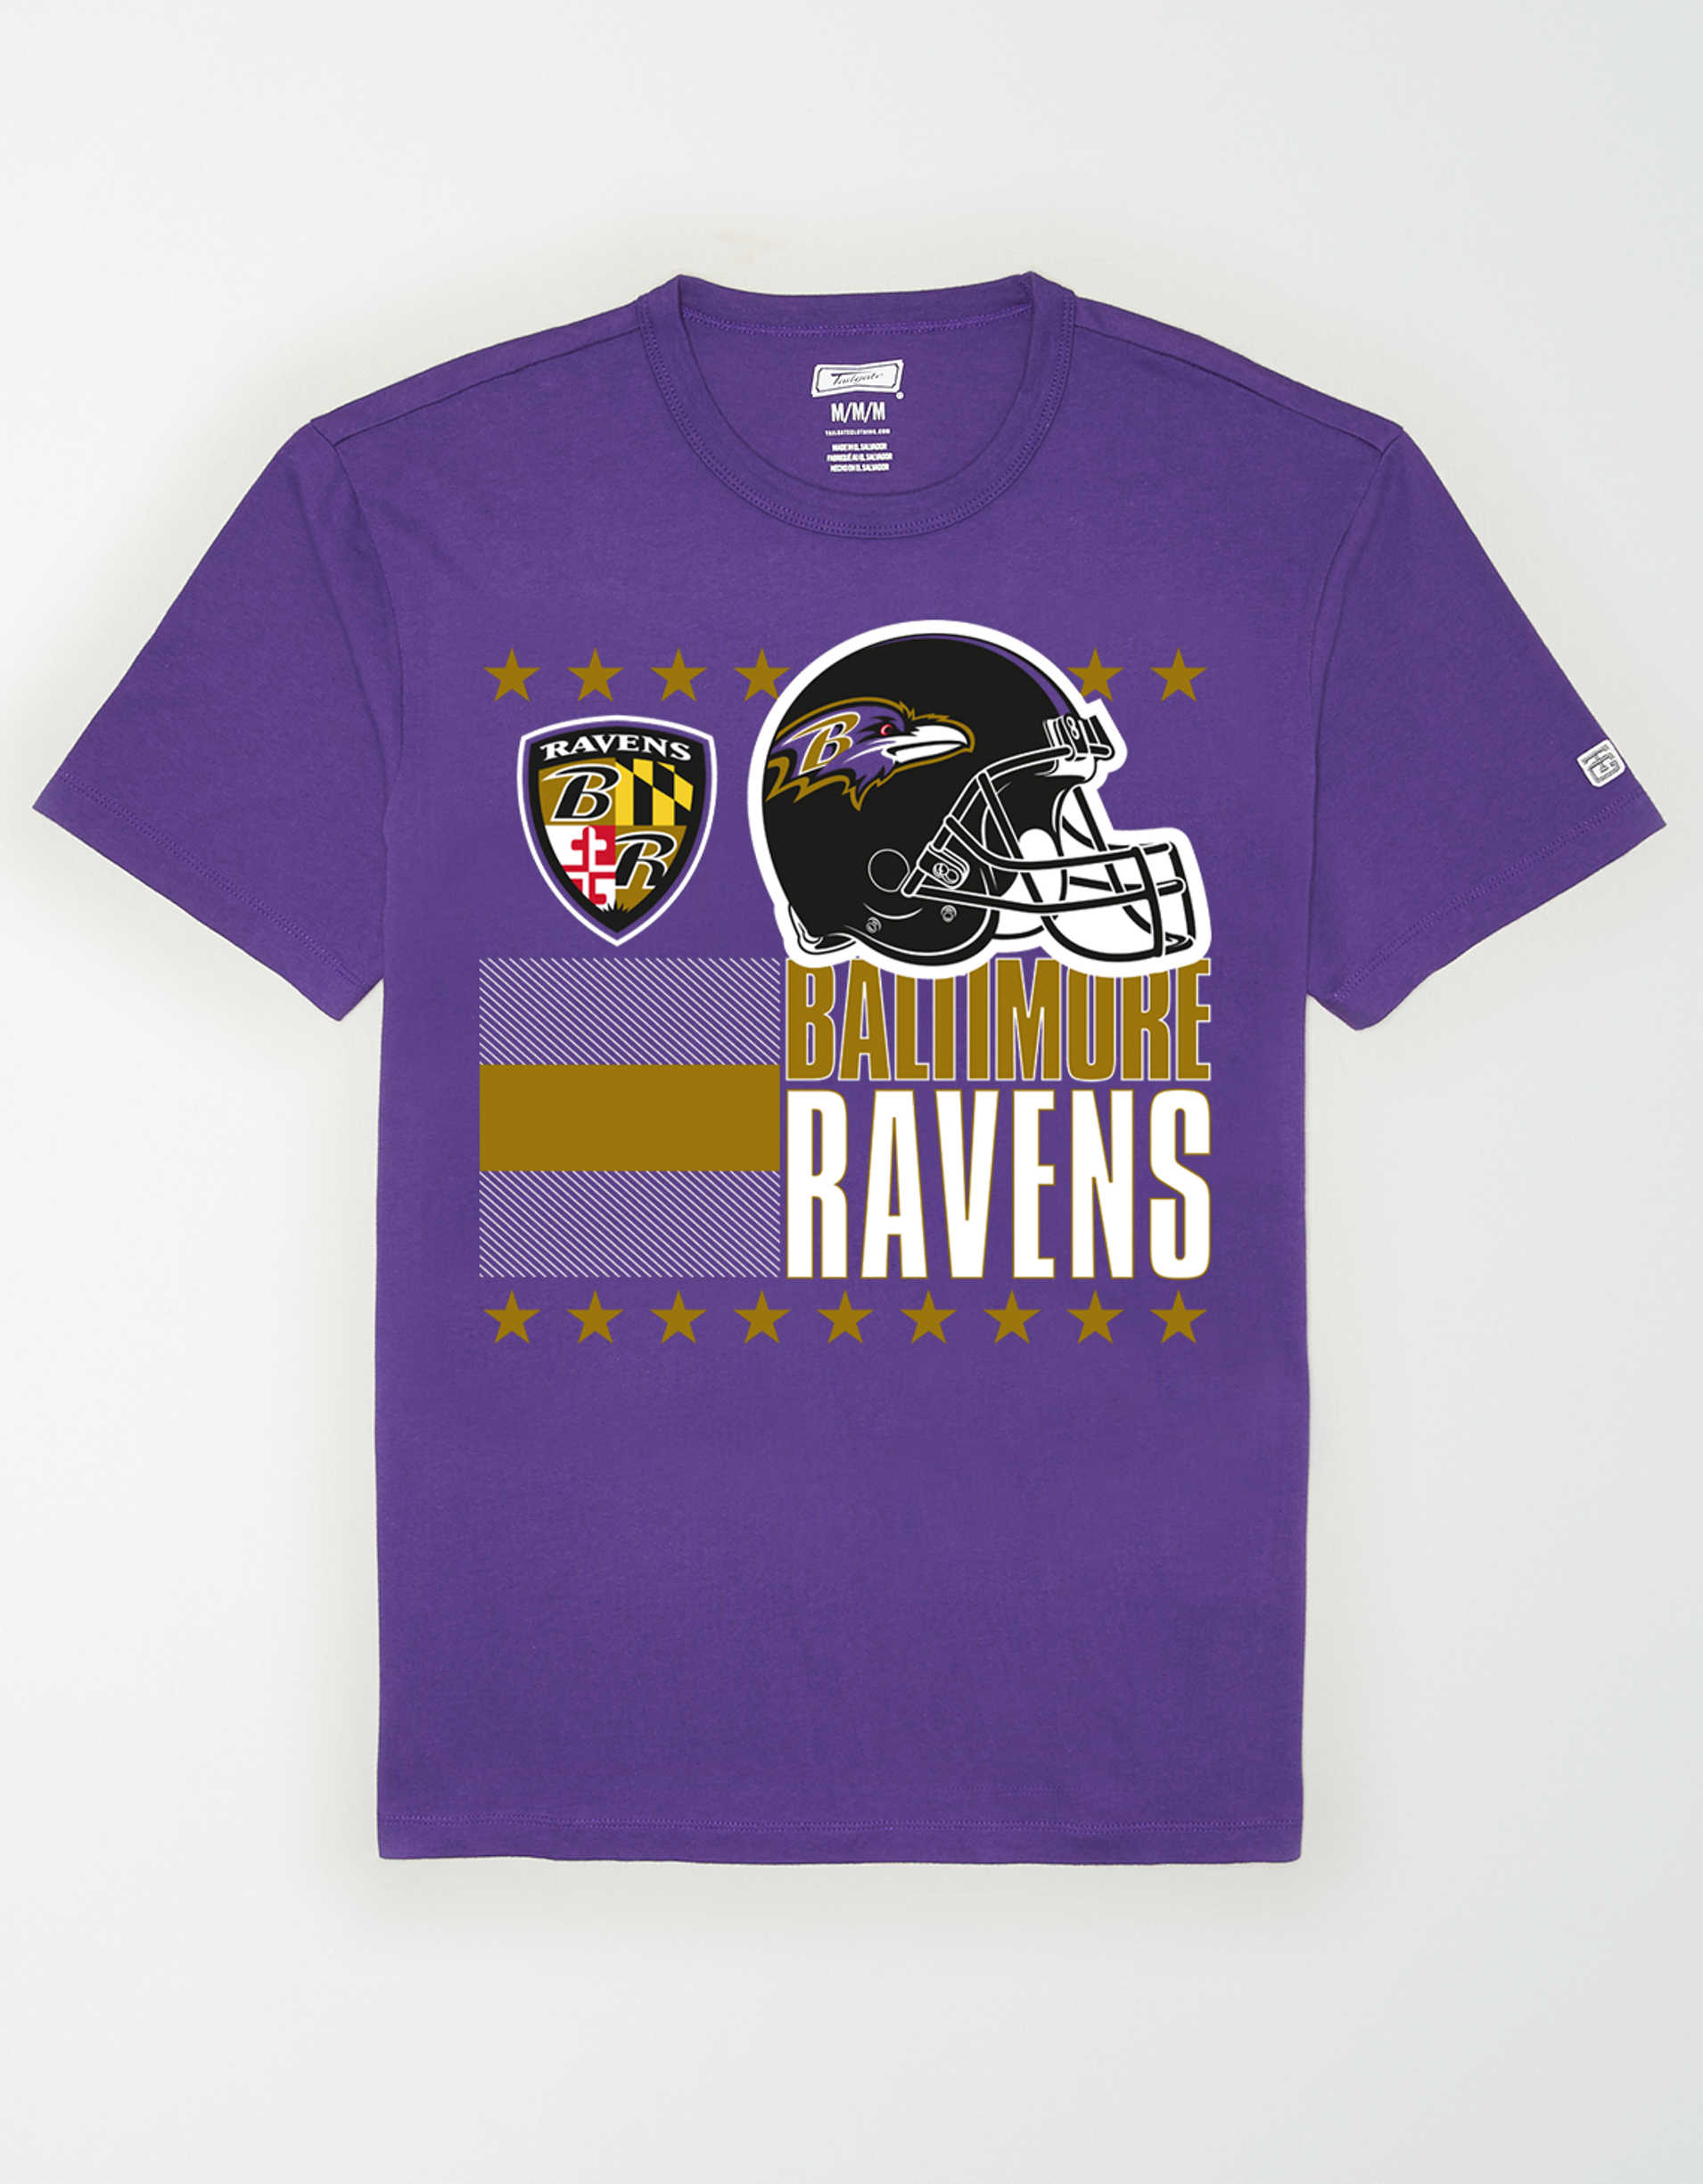 Tailgate Men's Baltimore Ravens T-Shirt